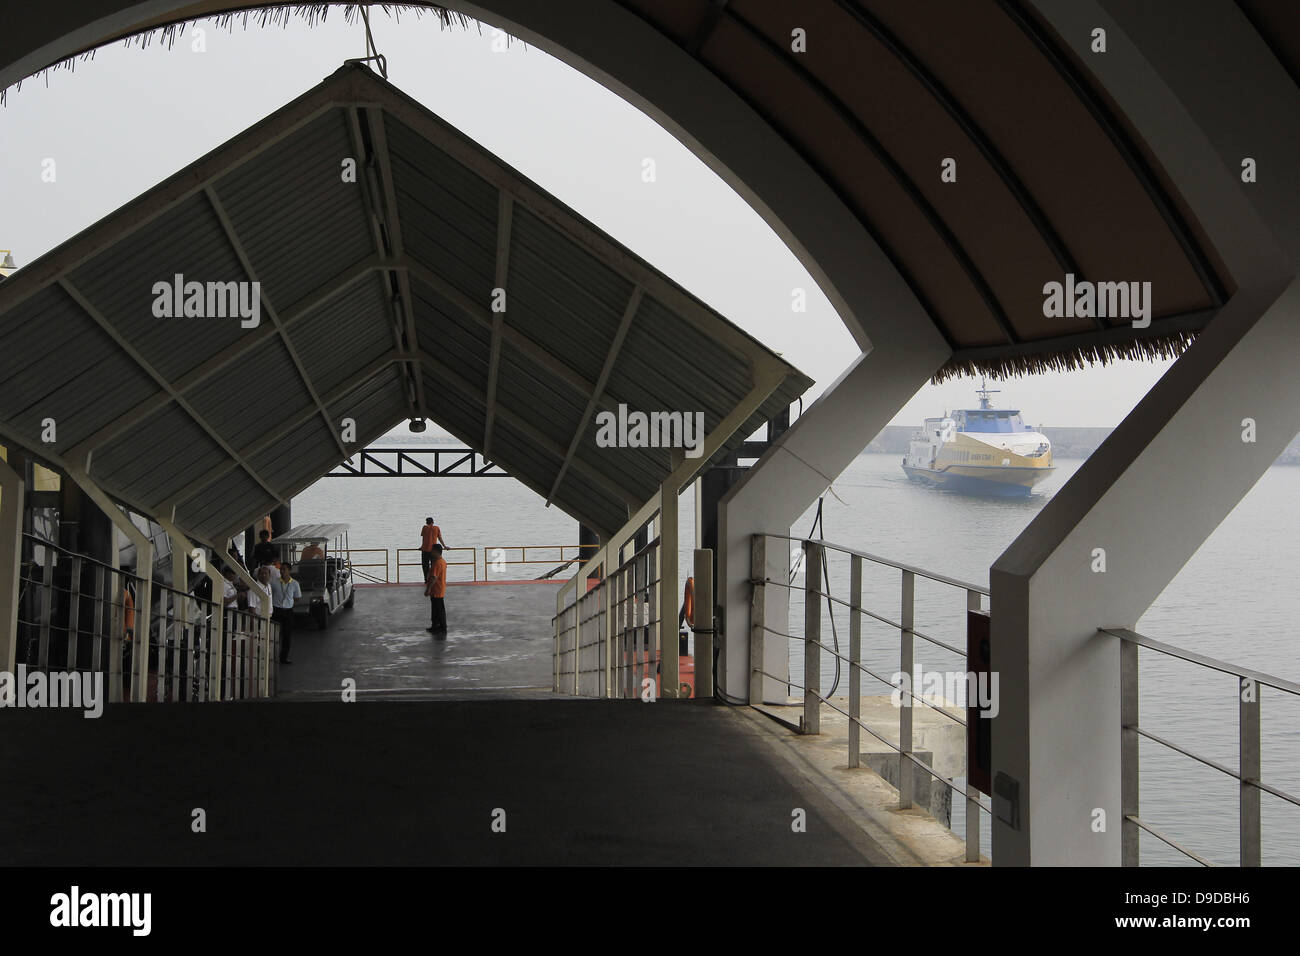 Bintan Island, Indonesia. 17th June, 2013. JUNE 17, 2013:A ship from Singapore with haze conditions arrived in Bintan - Stock Image